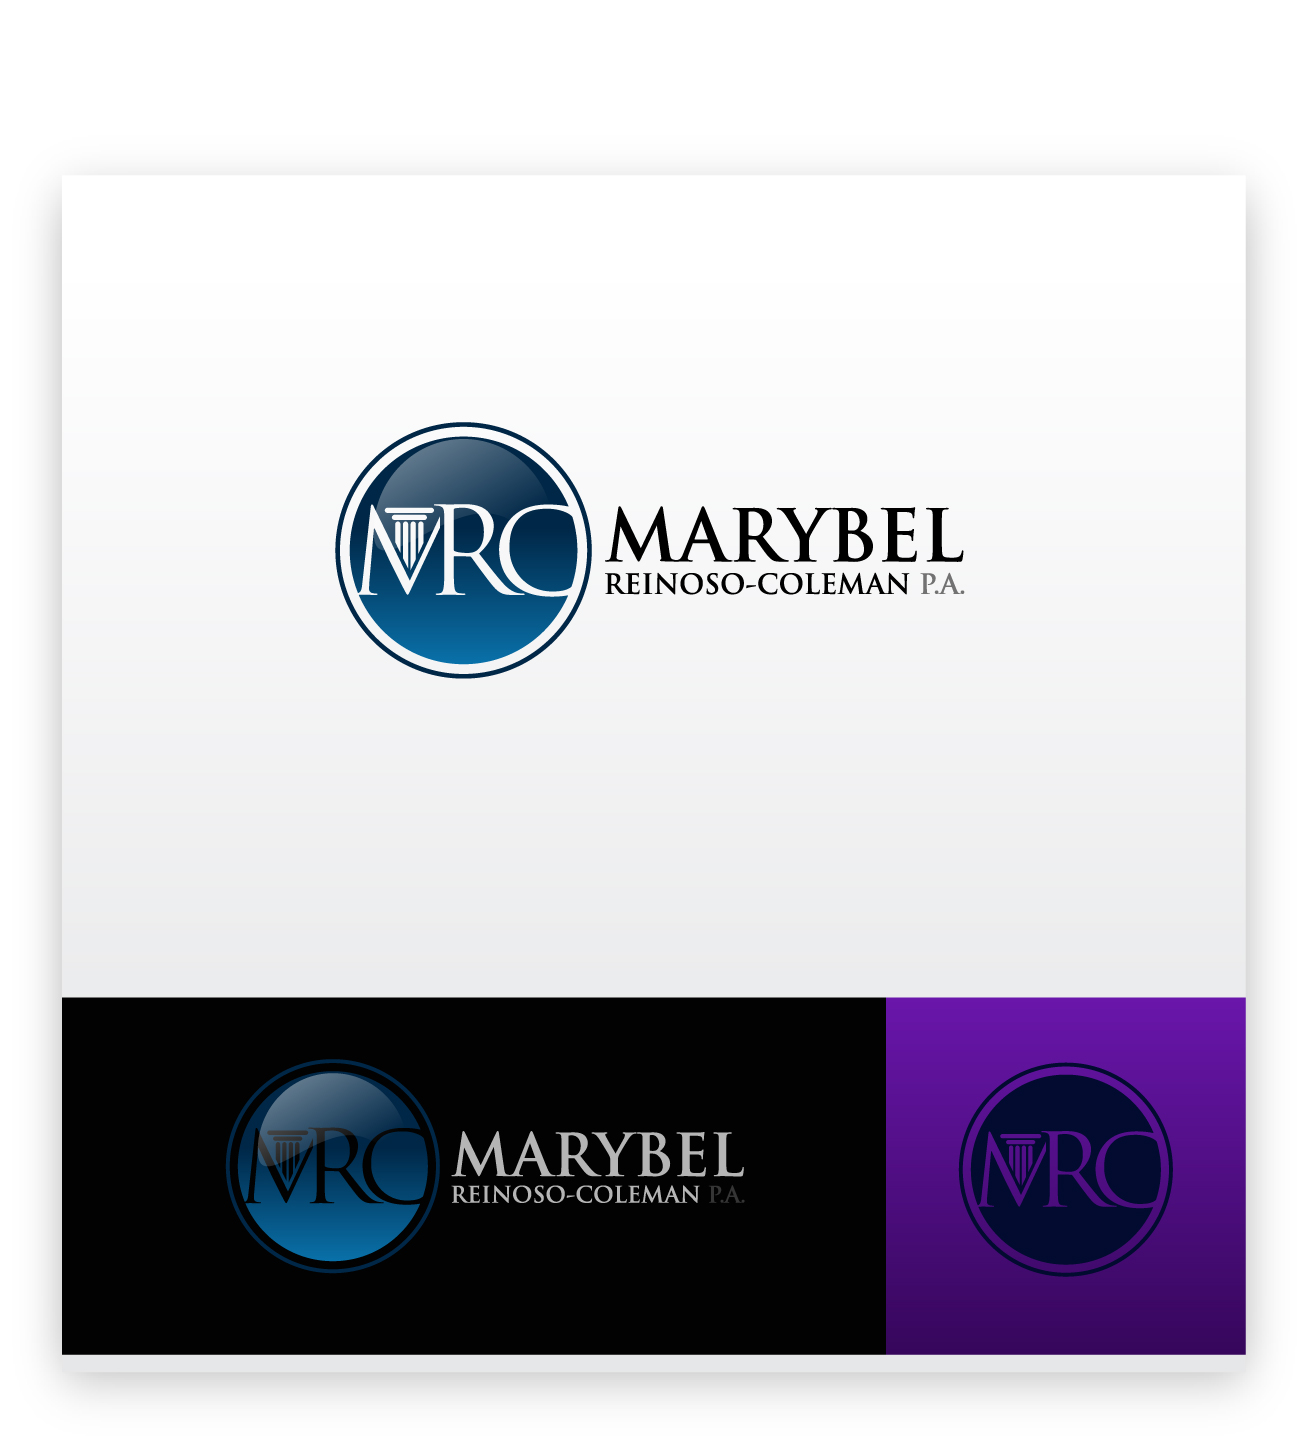 Logo Design by zoiDesign - Entry No. 48 in the Logo Design Contest Creative Logo Design for Marybel Reinoso Coleman P.A..